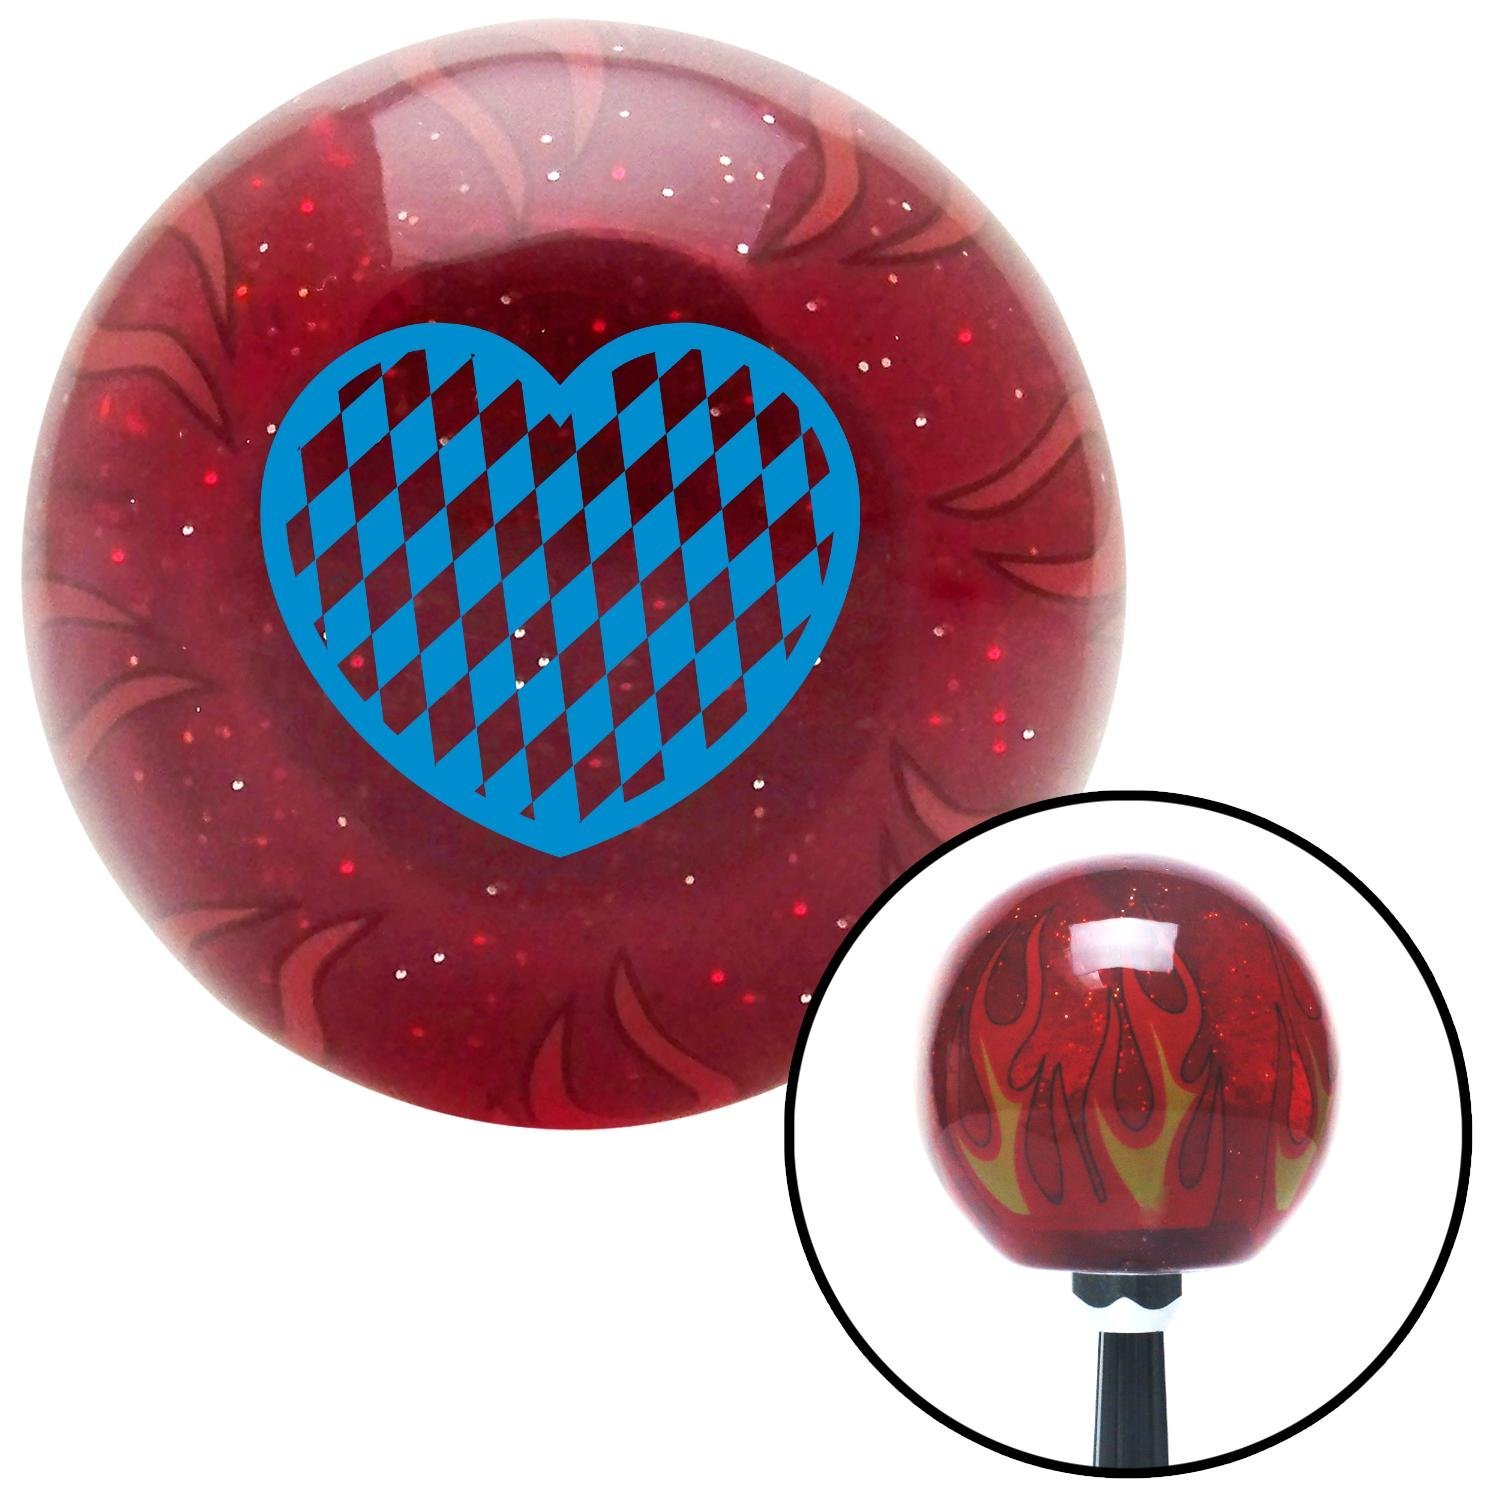 American Shifter 237098 Red Flame Metal Flake Shift Knob with M16 x 1.5 Insert Blue Checkered Heart